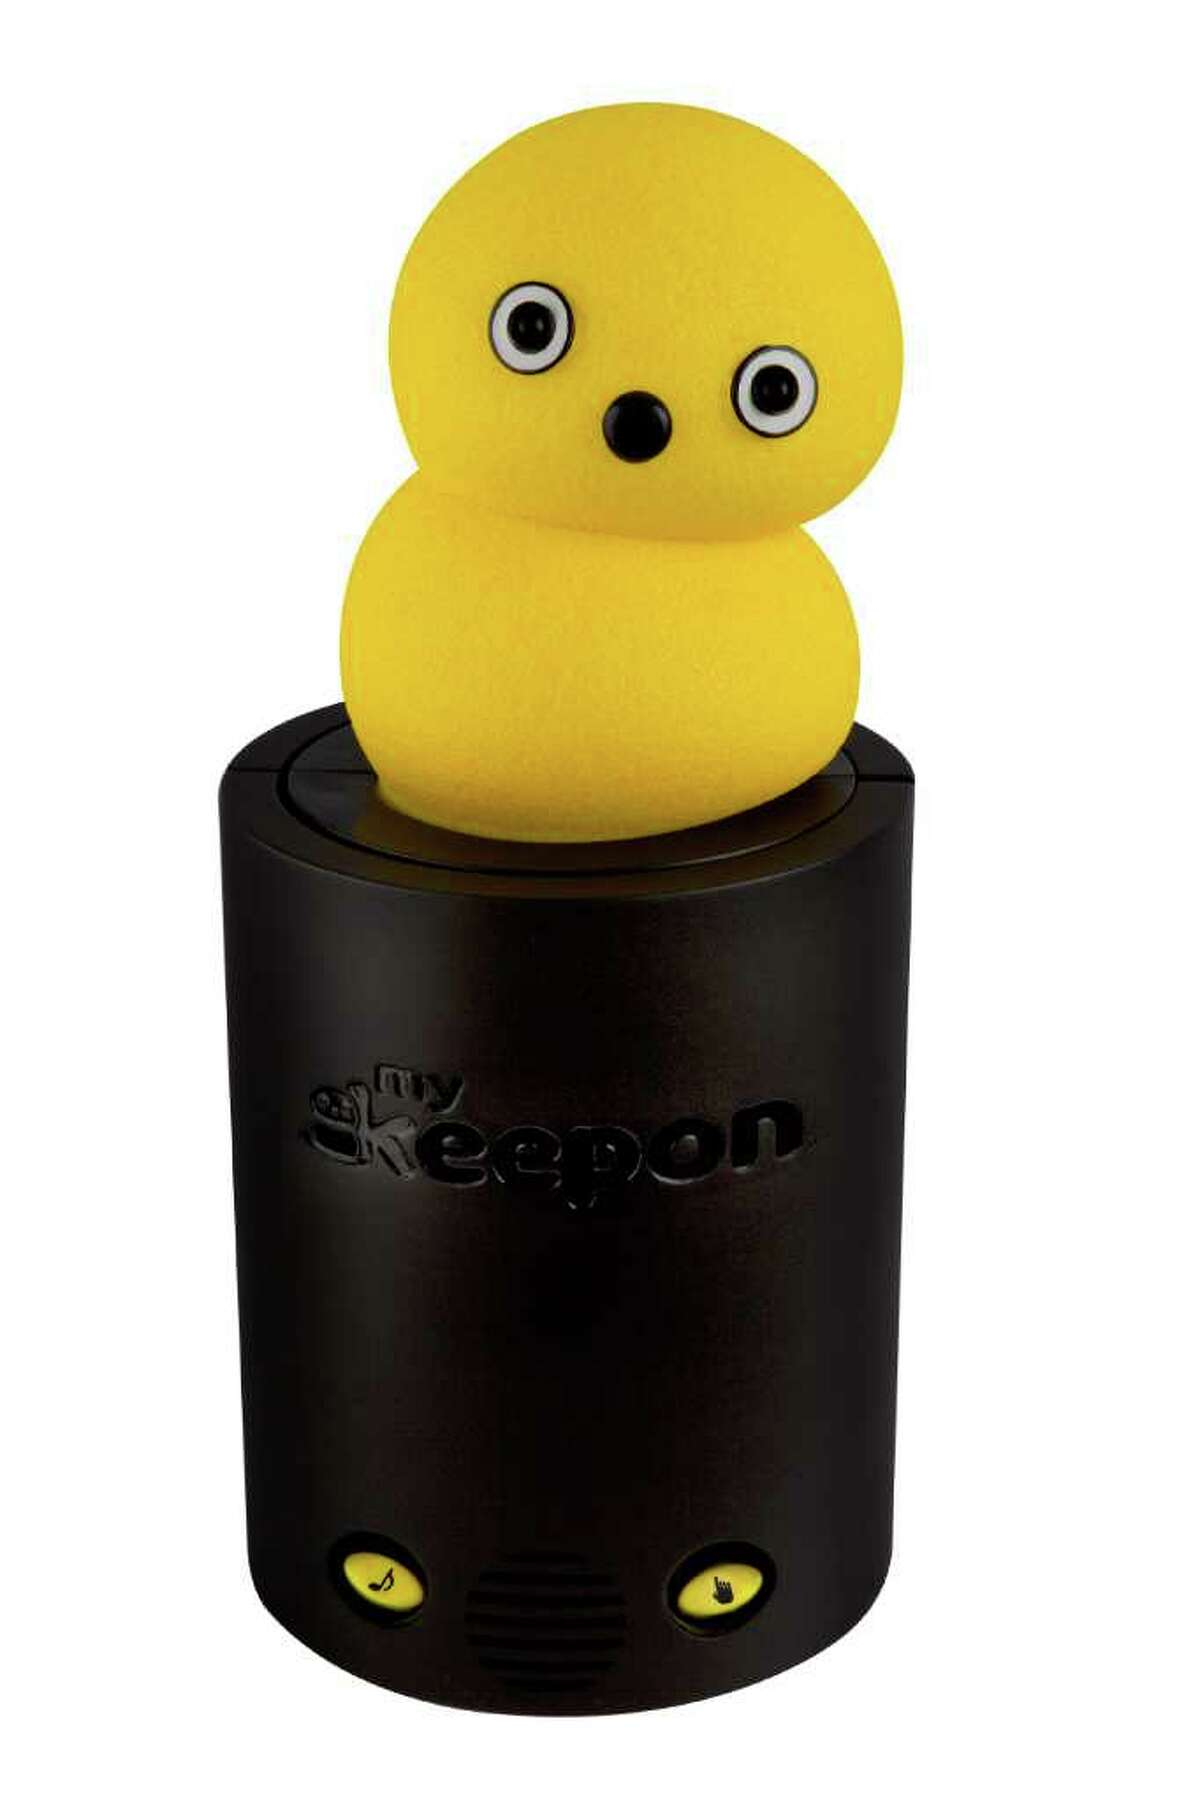 My Keepon: With yellow, textured skin, this lovable robotic toy is insatiably curious, craves attention, reacts to touch, and has the amazing ability to listen to music, detect the beat and dance in perfect rhythm. This Toys